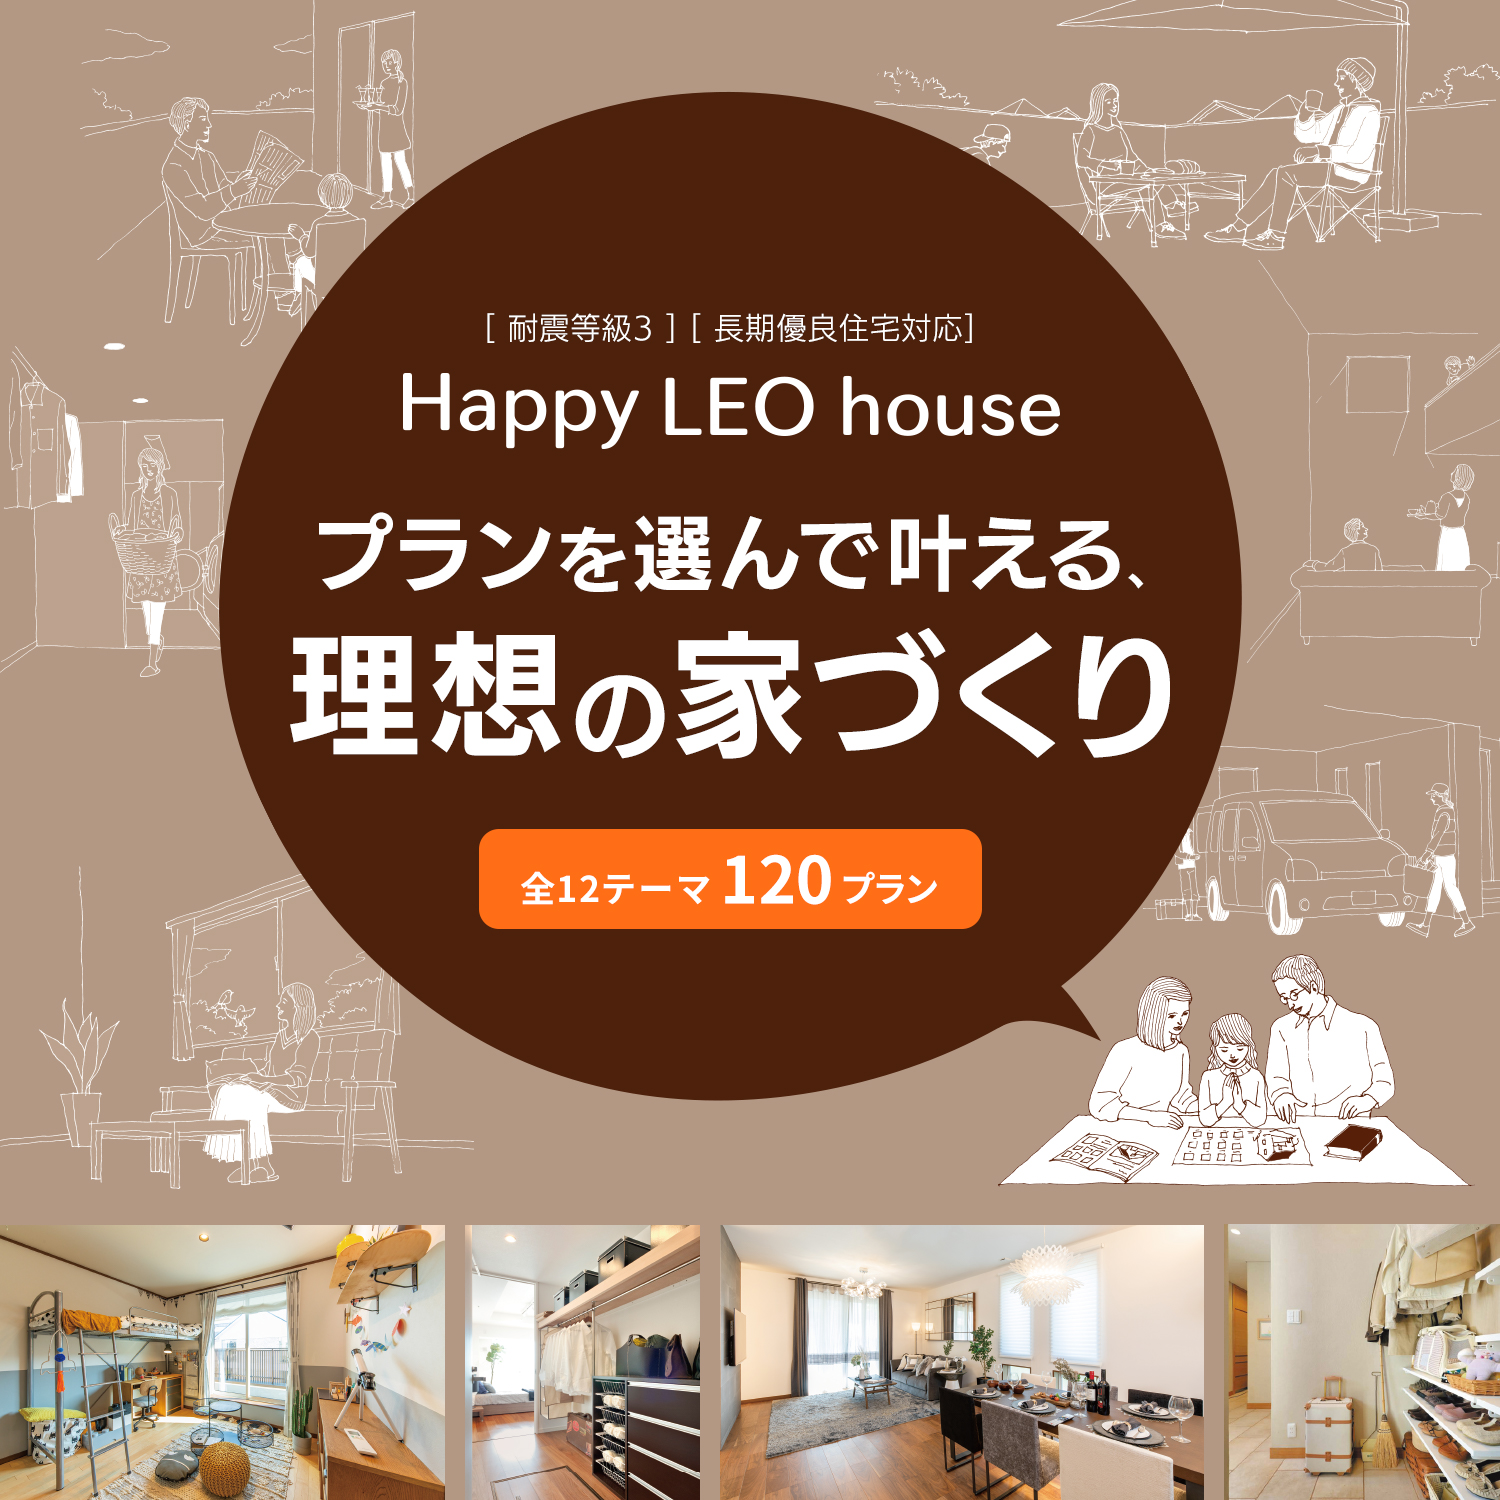 Happy LEO house